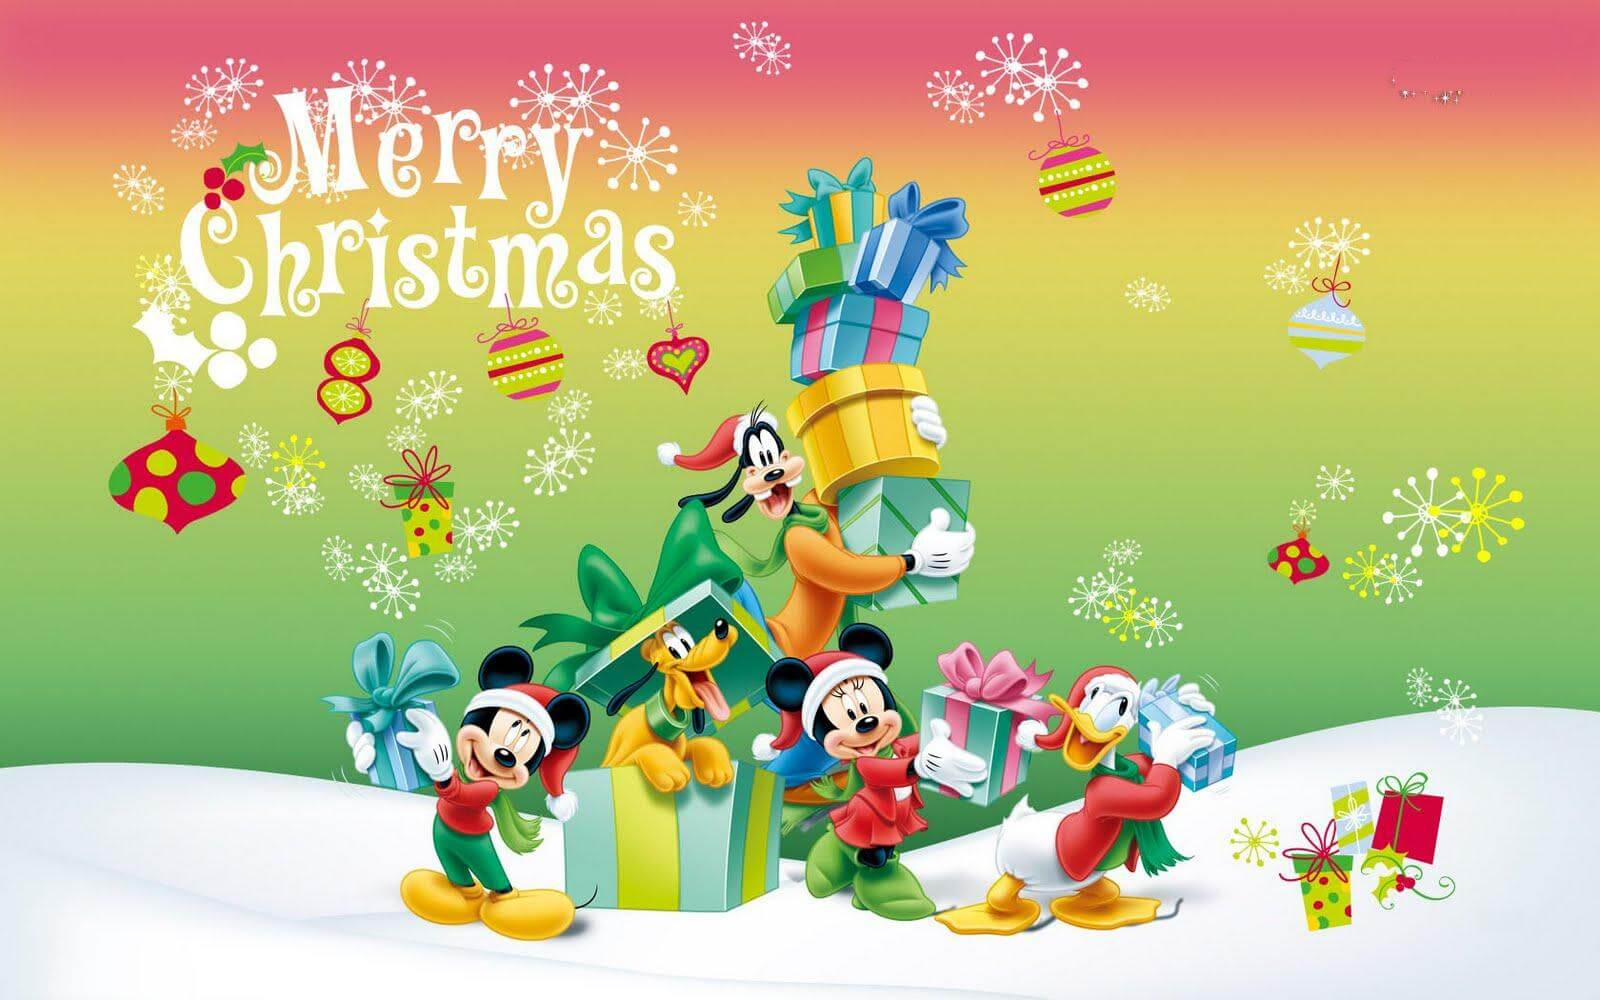 Christmas Cartoons Images